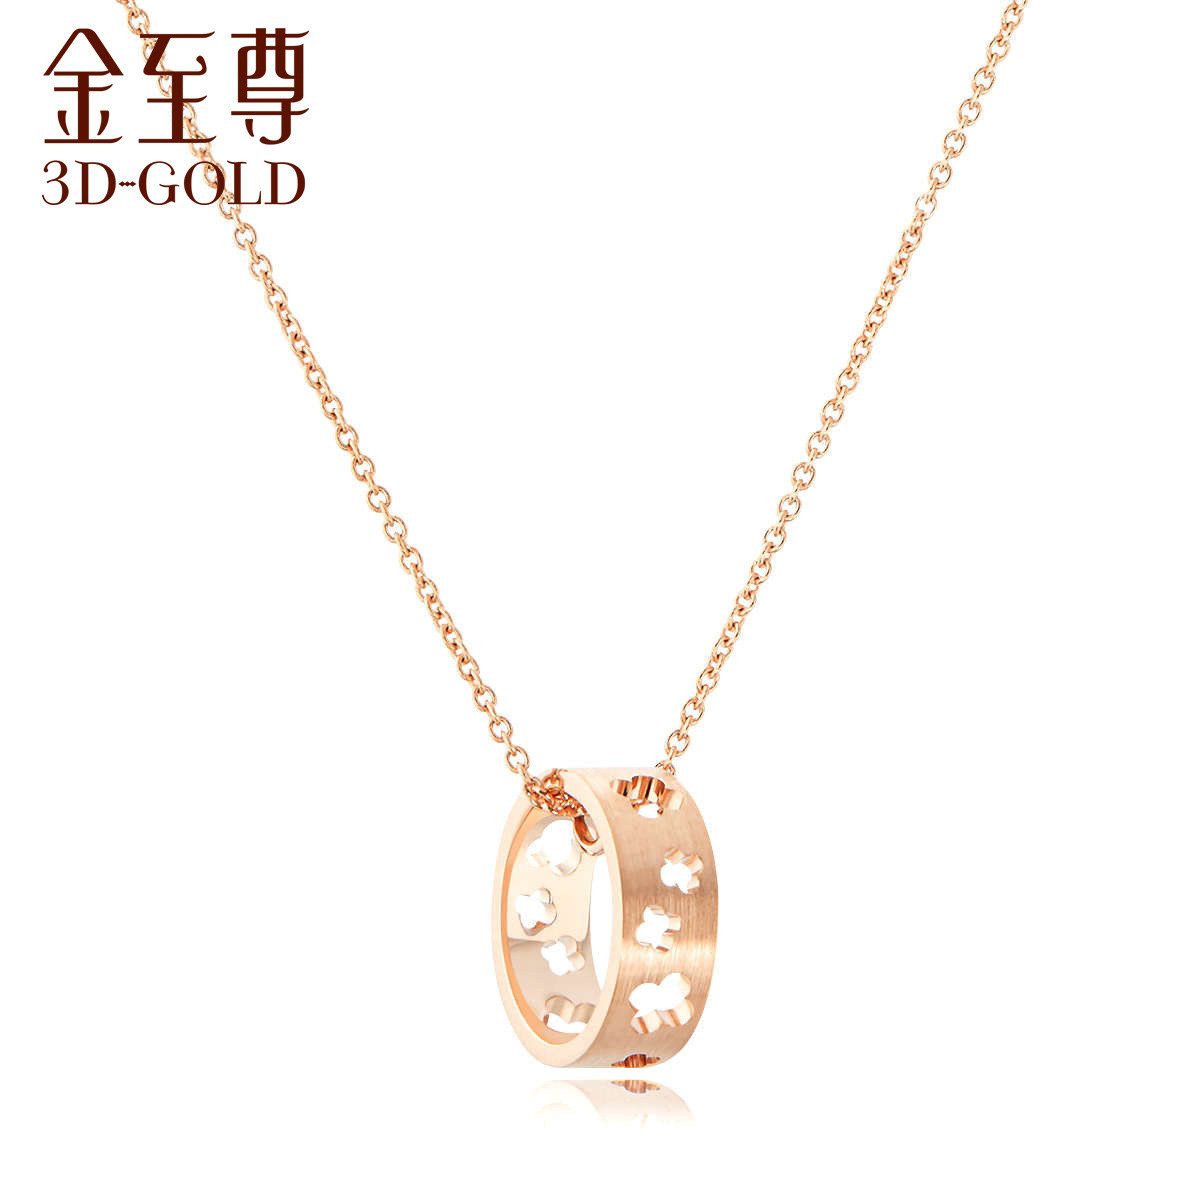 3DGOLD Jewellery Cool Love Collection 18K Red Gold Necklace